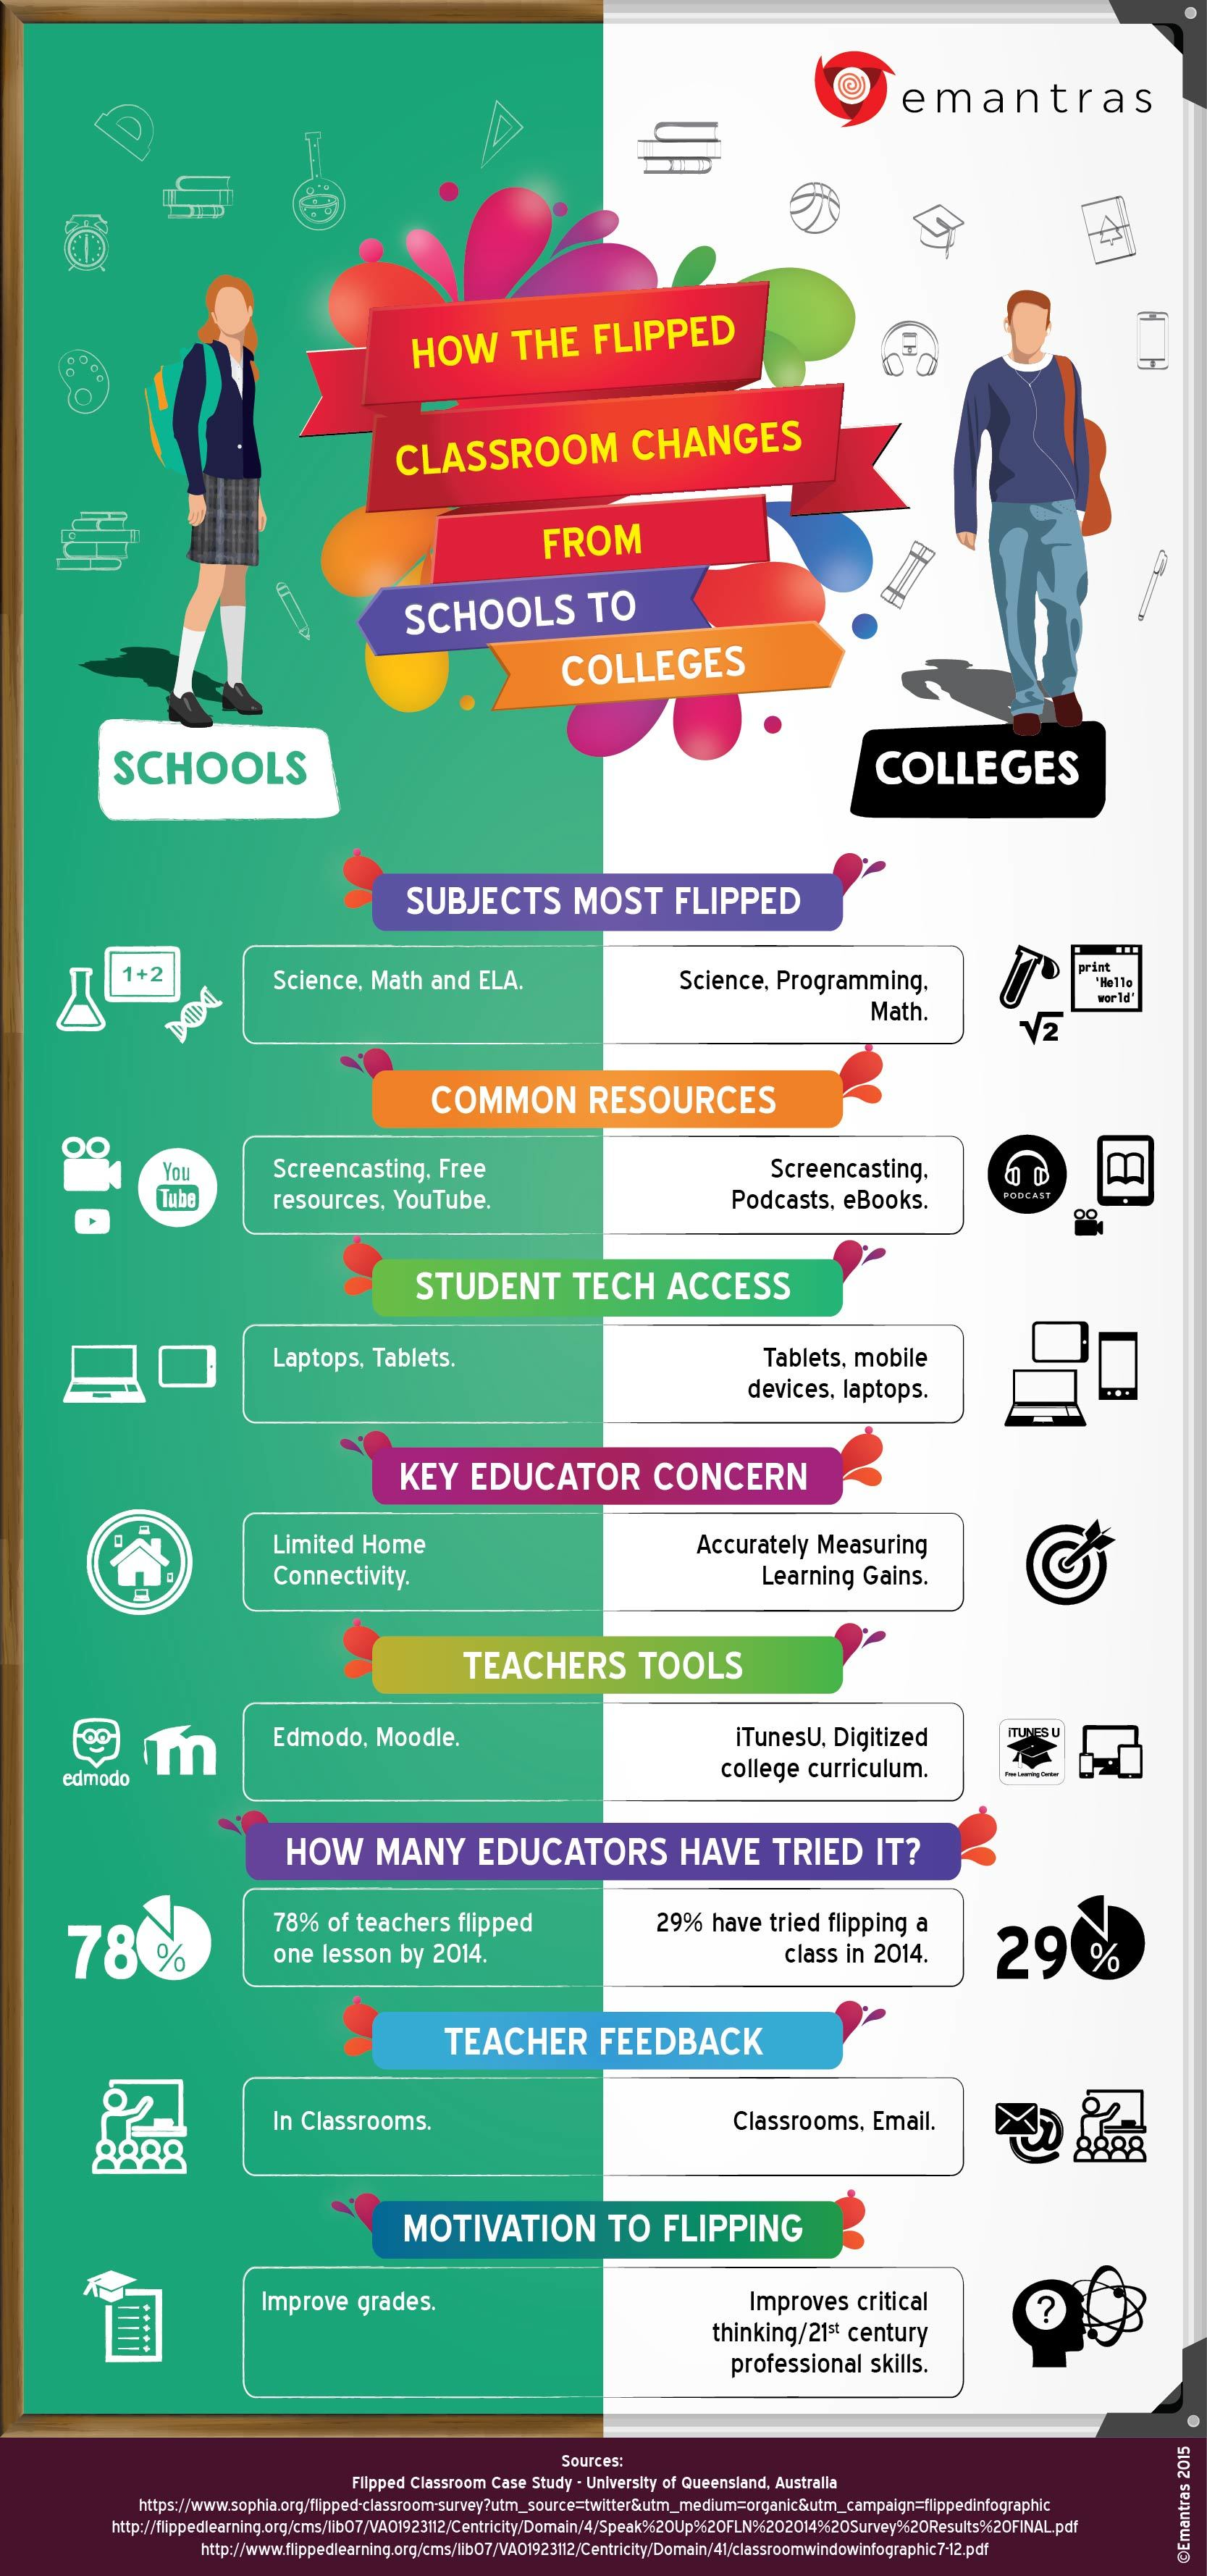 How Flipped Classrooms Change from Schools to Colleges ...